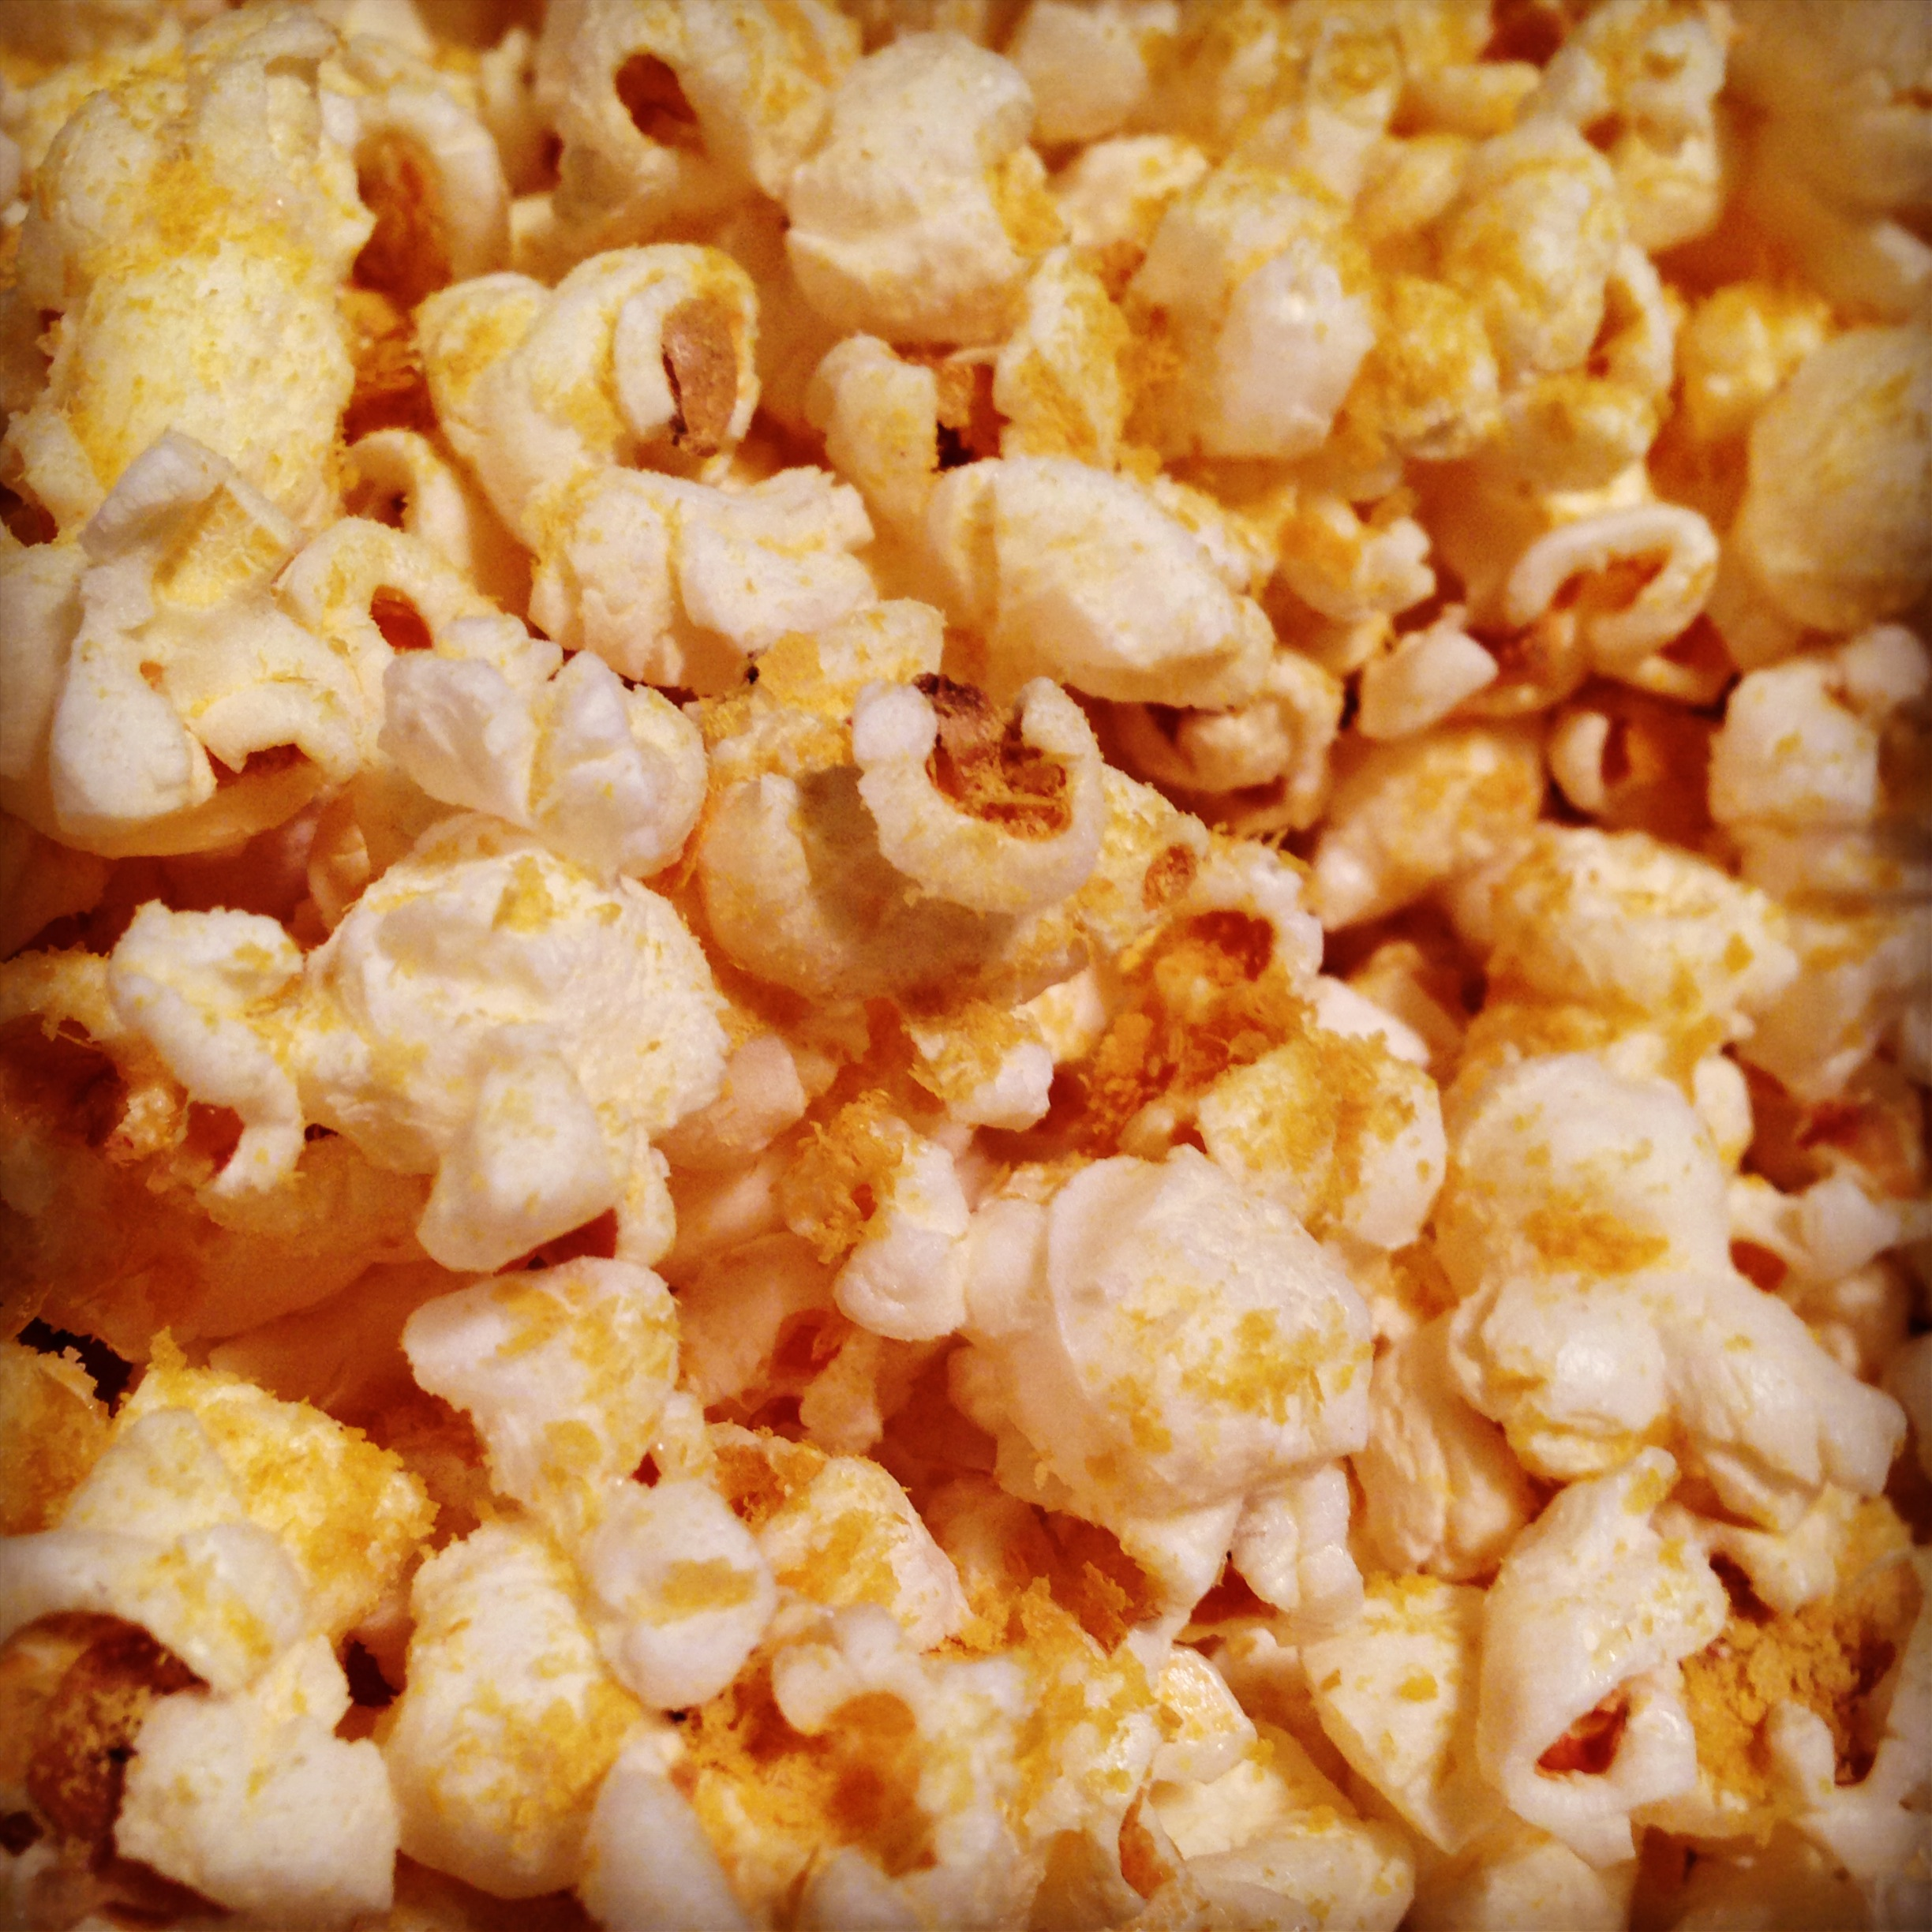 Stovetop Popcorn with Nutritional Yeast